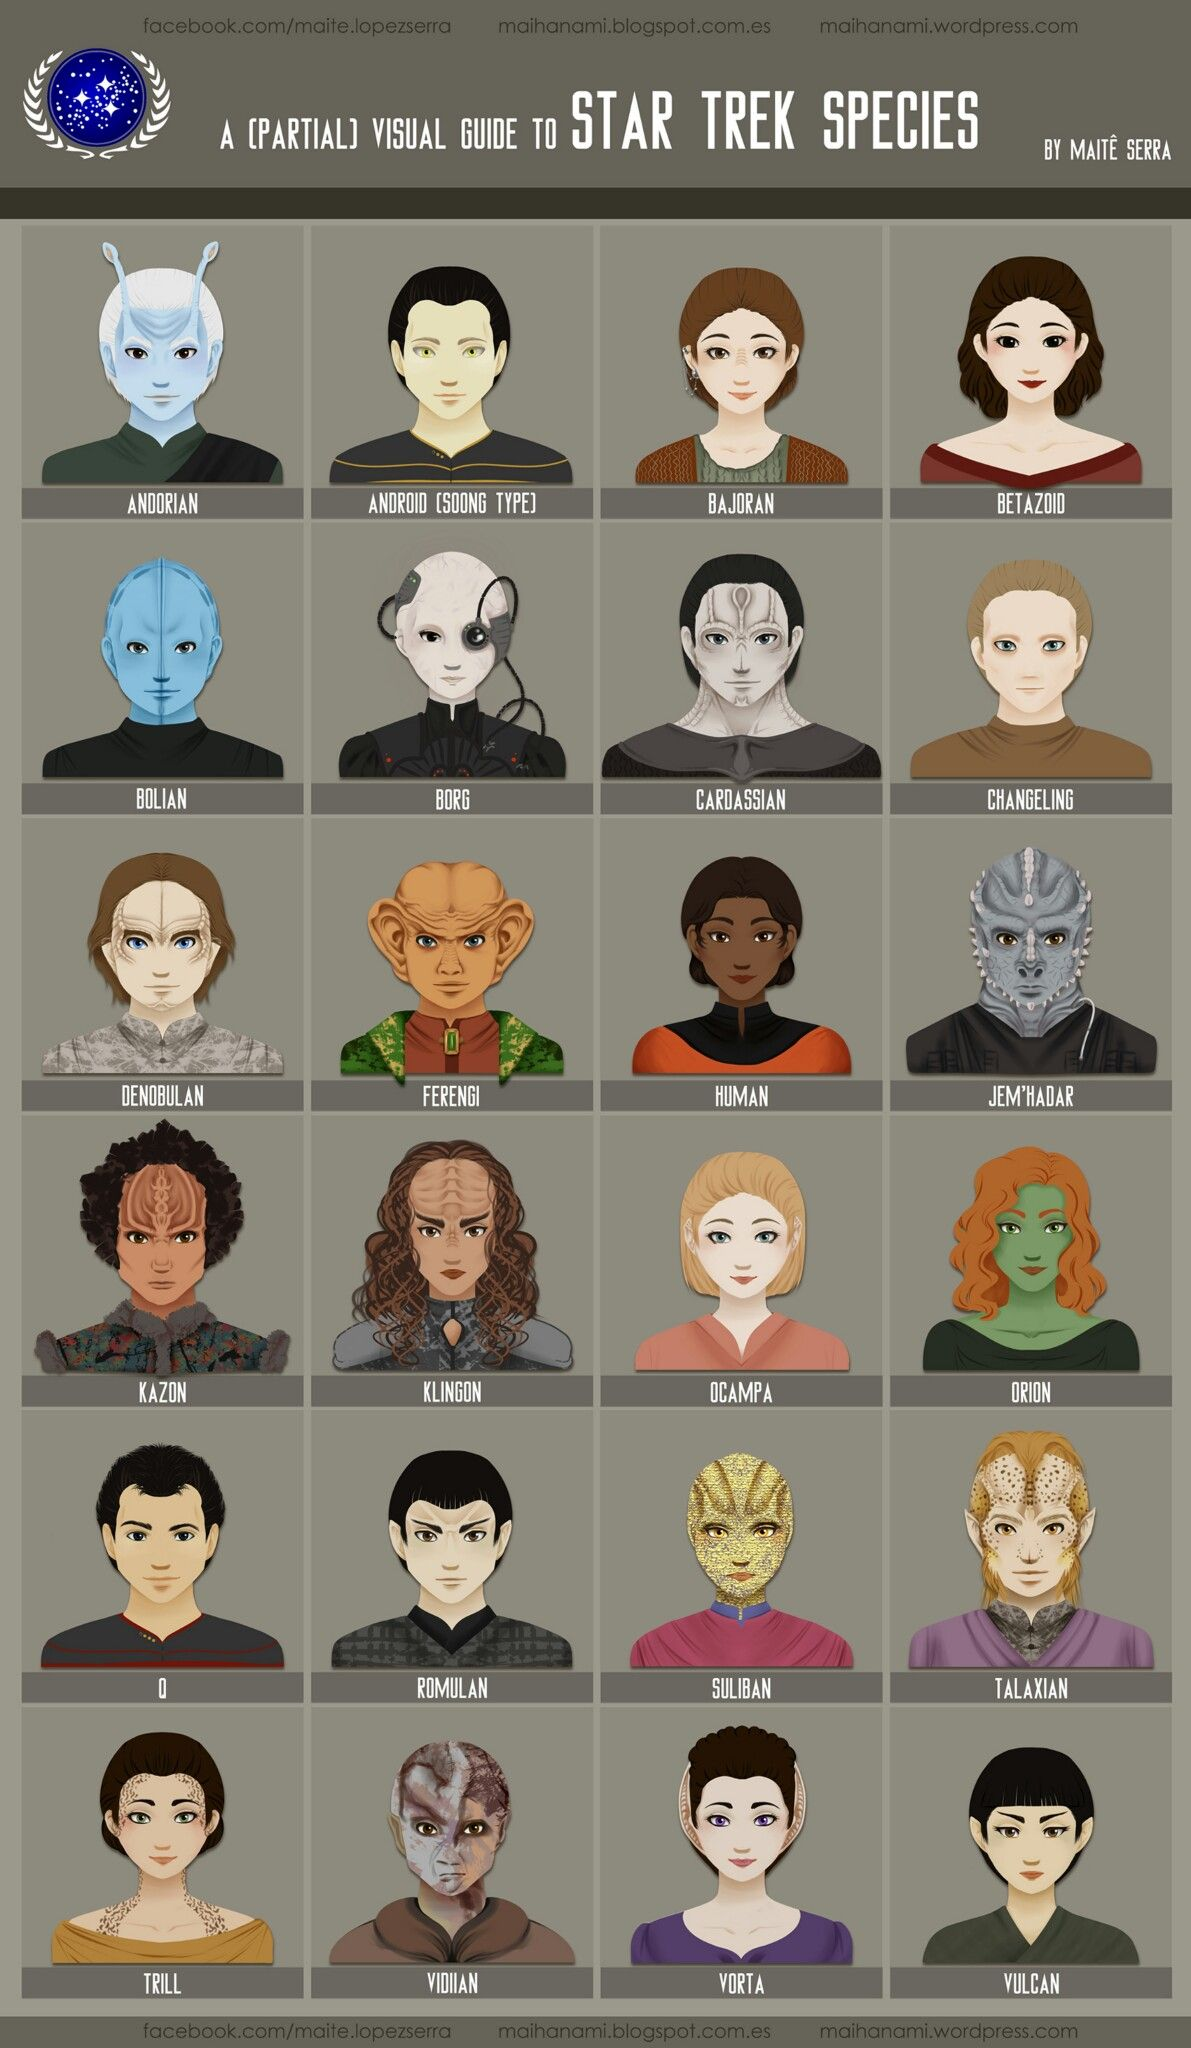 Pin By Janine Danzi On Trek And Sci Star Trek Species Star Trek Funny Star Trek Starships